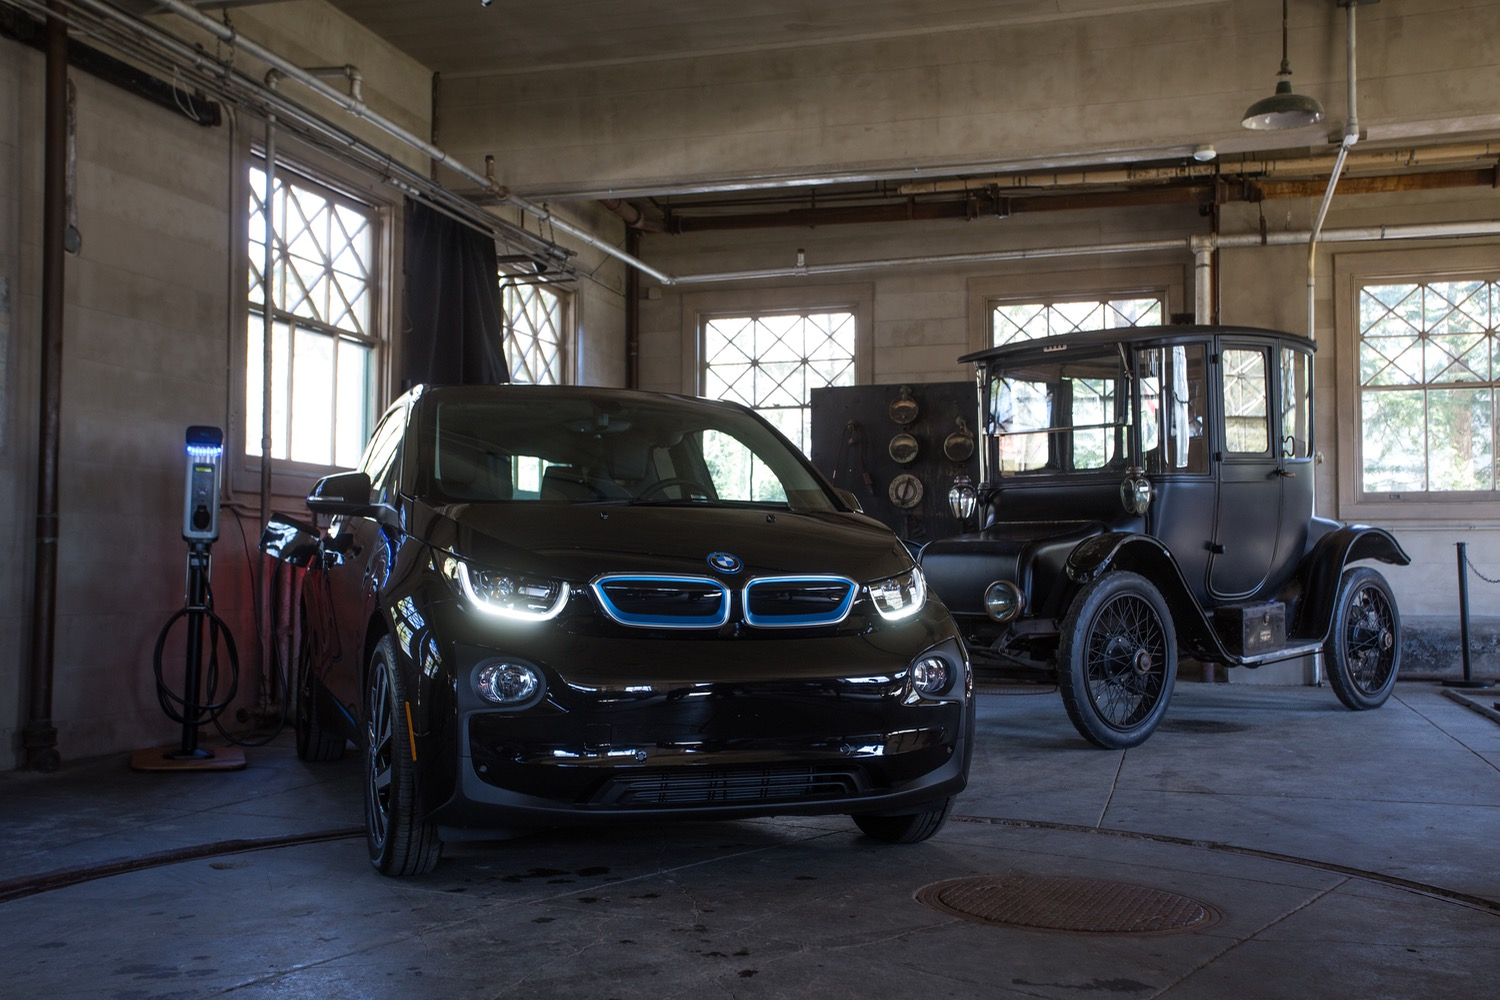 Electric Car Chargers Are Coming to 100 National Parks This Year